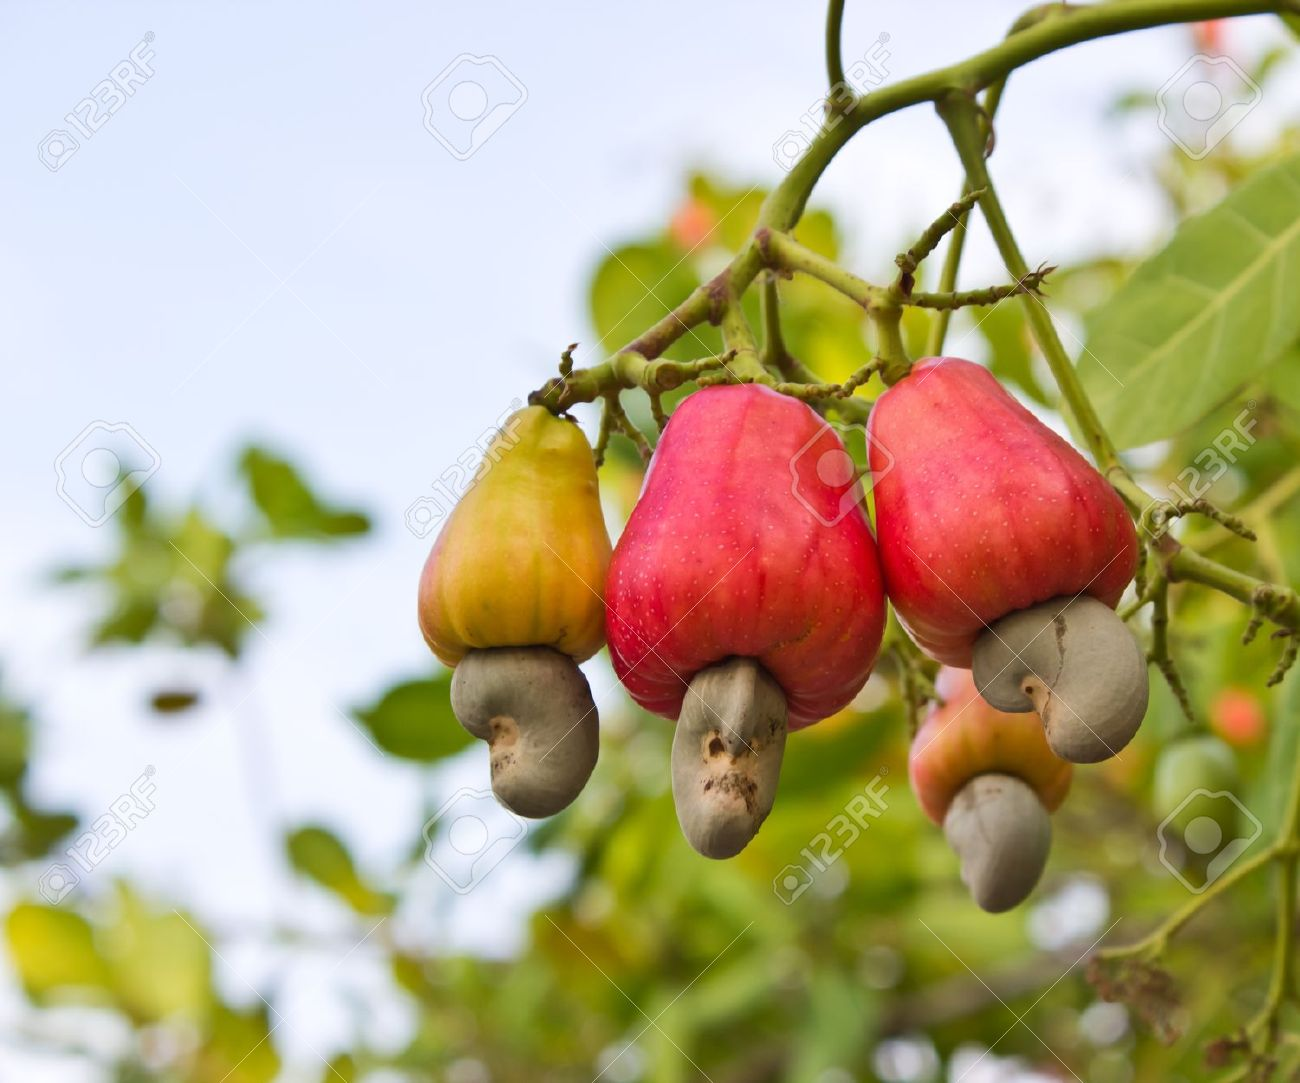 Update on cashew market report April 2021